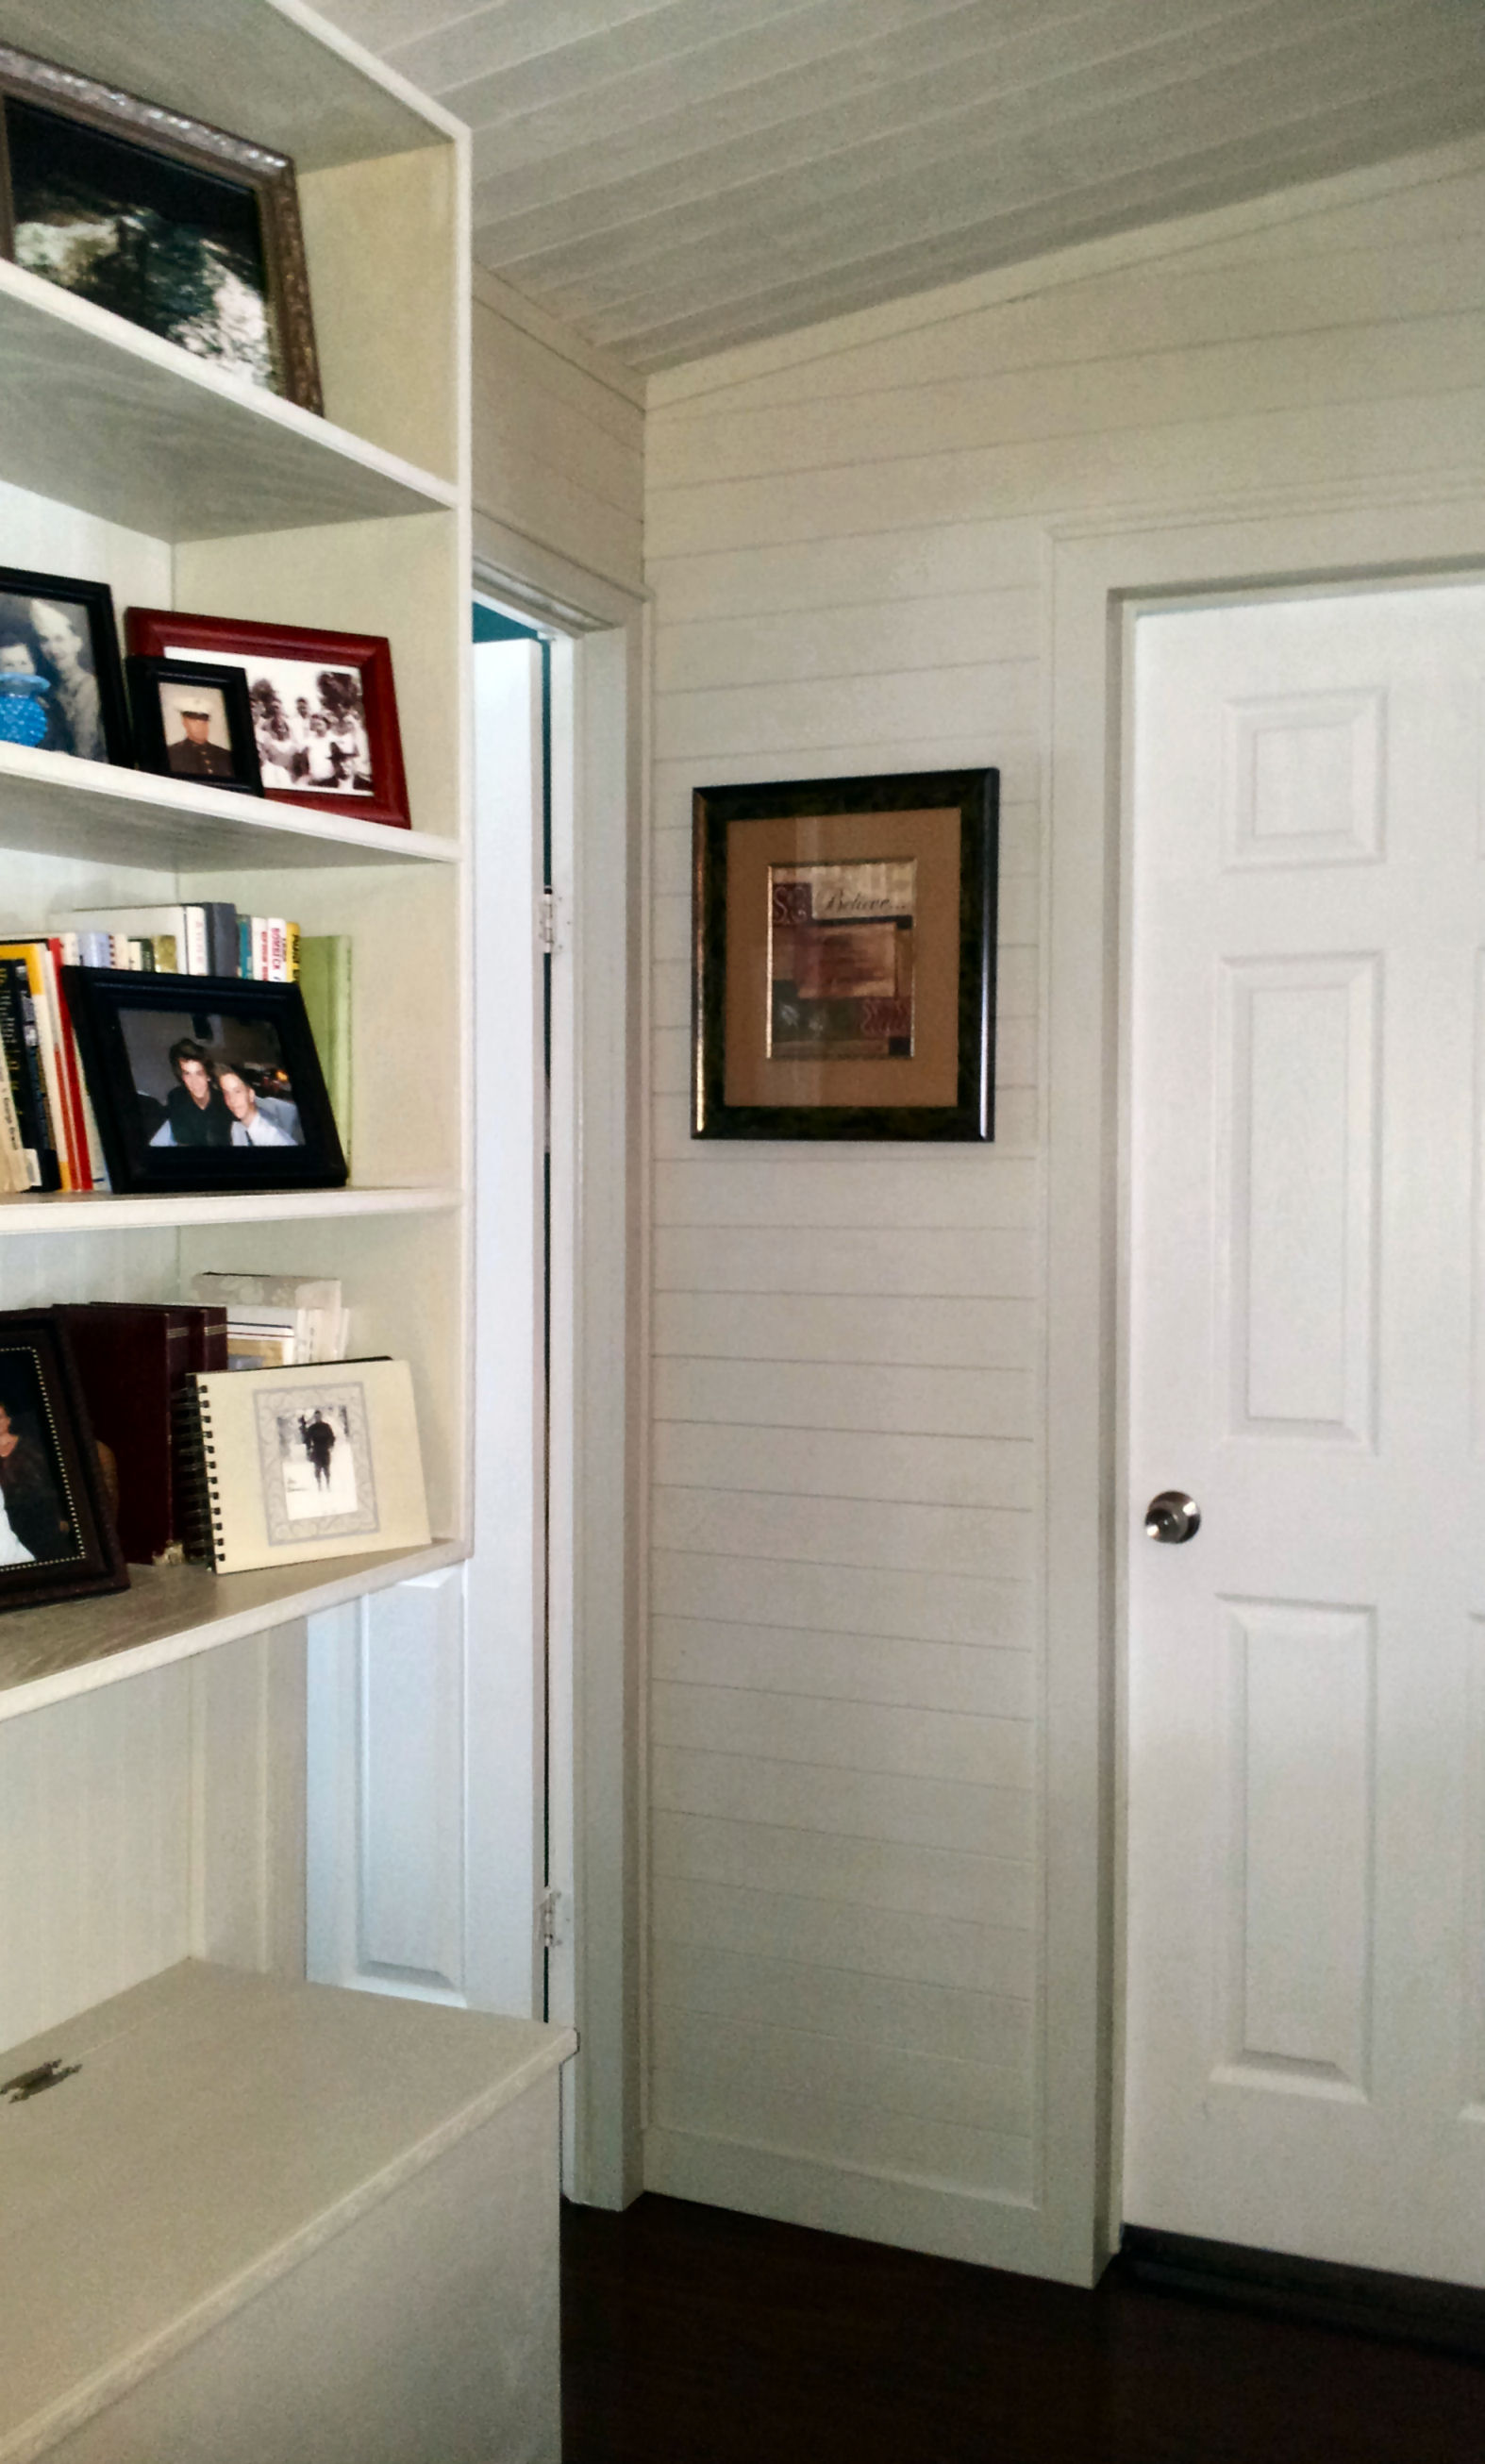 Small bedroom door with no hall separation. Mobile Home Living Room Remodel  The Finale   My Mobile Home Makeover